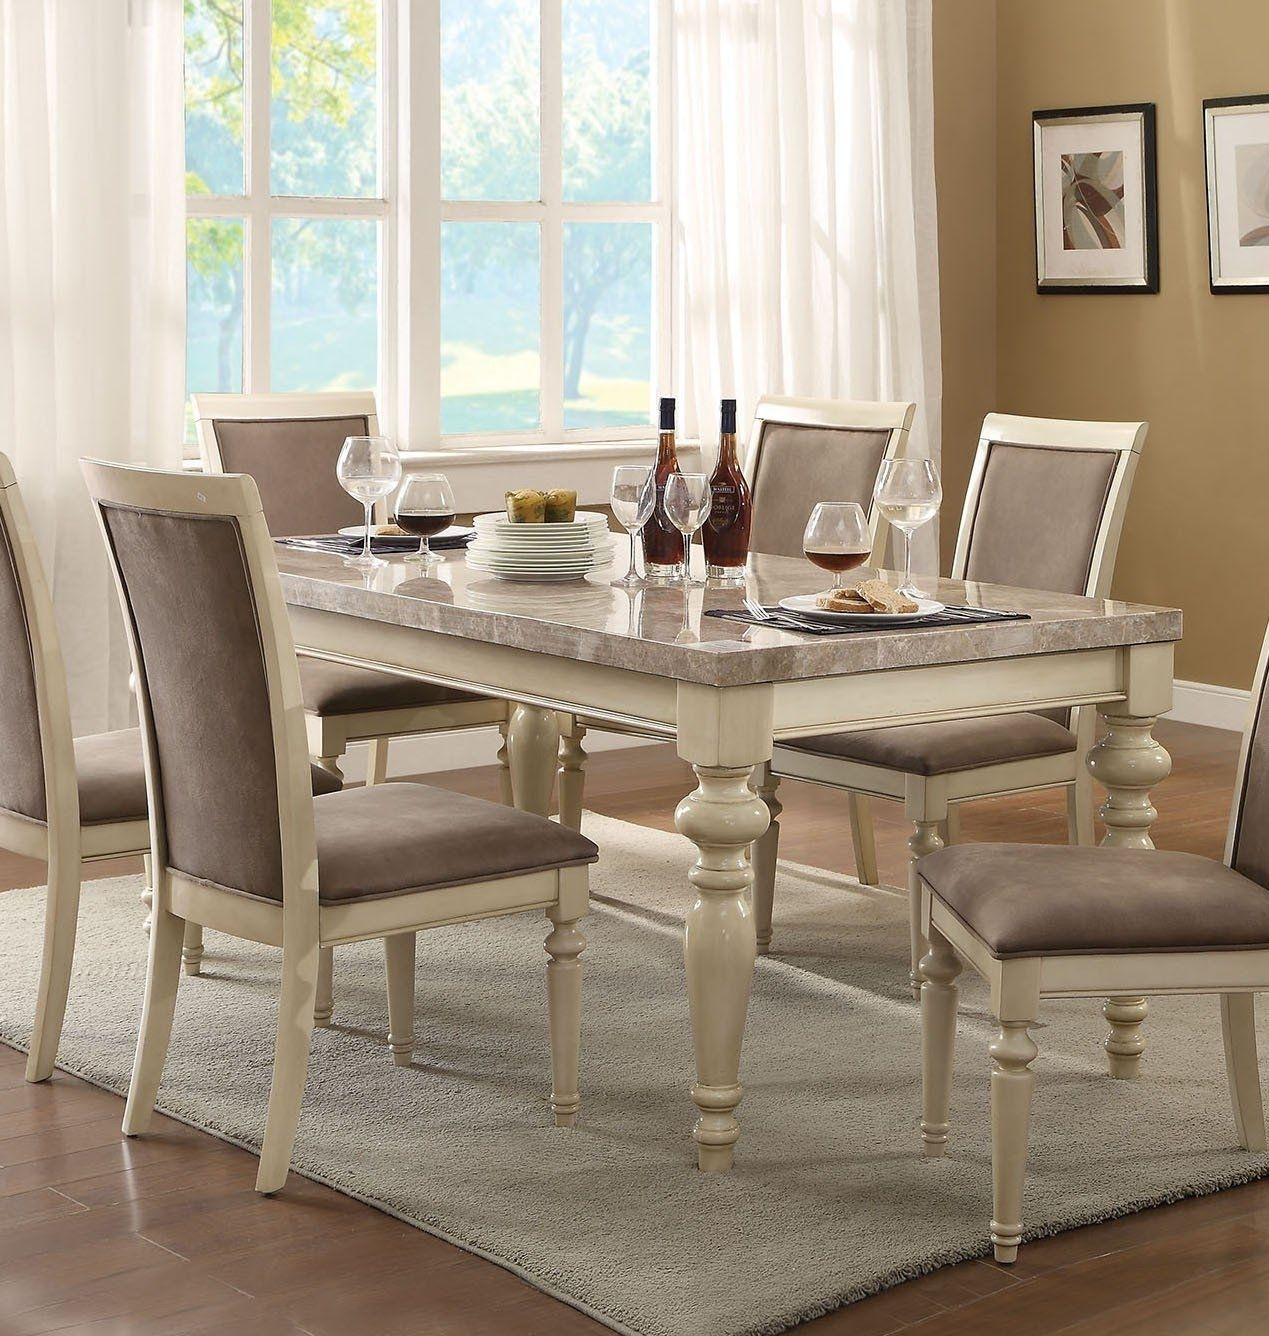 Acme 71705 Ryder Antique White Marble Top Dining Table | Home Within Most Current Caira Black 5 Piece Round Dining Sets With Diamond Back Side Chairs (Image 2 of 20)